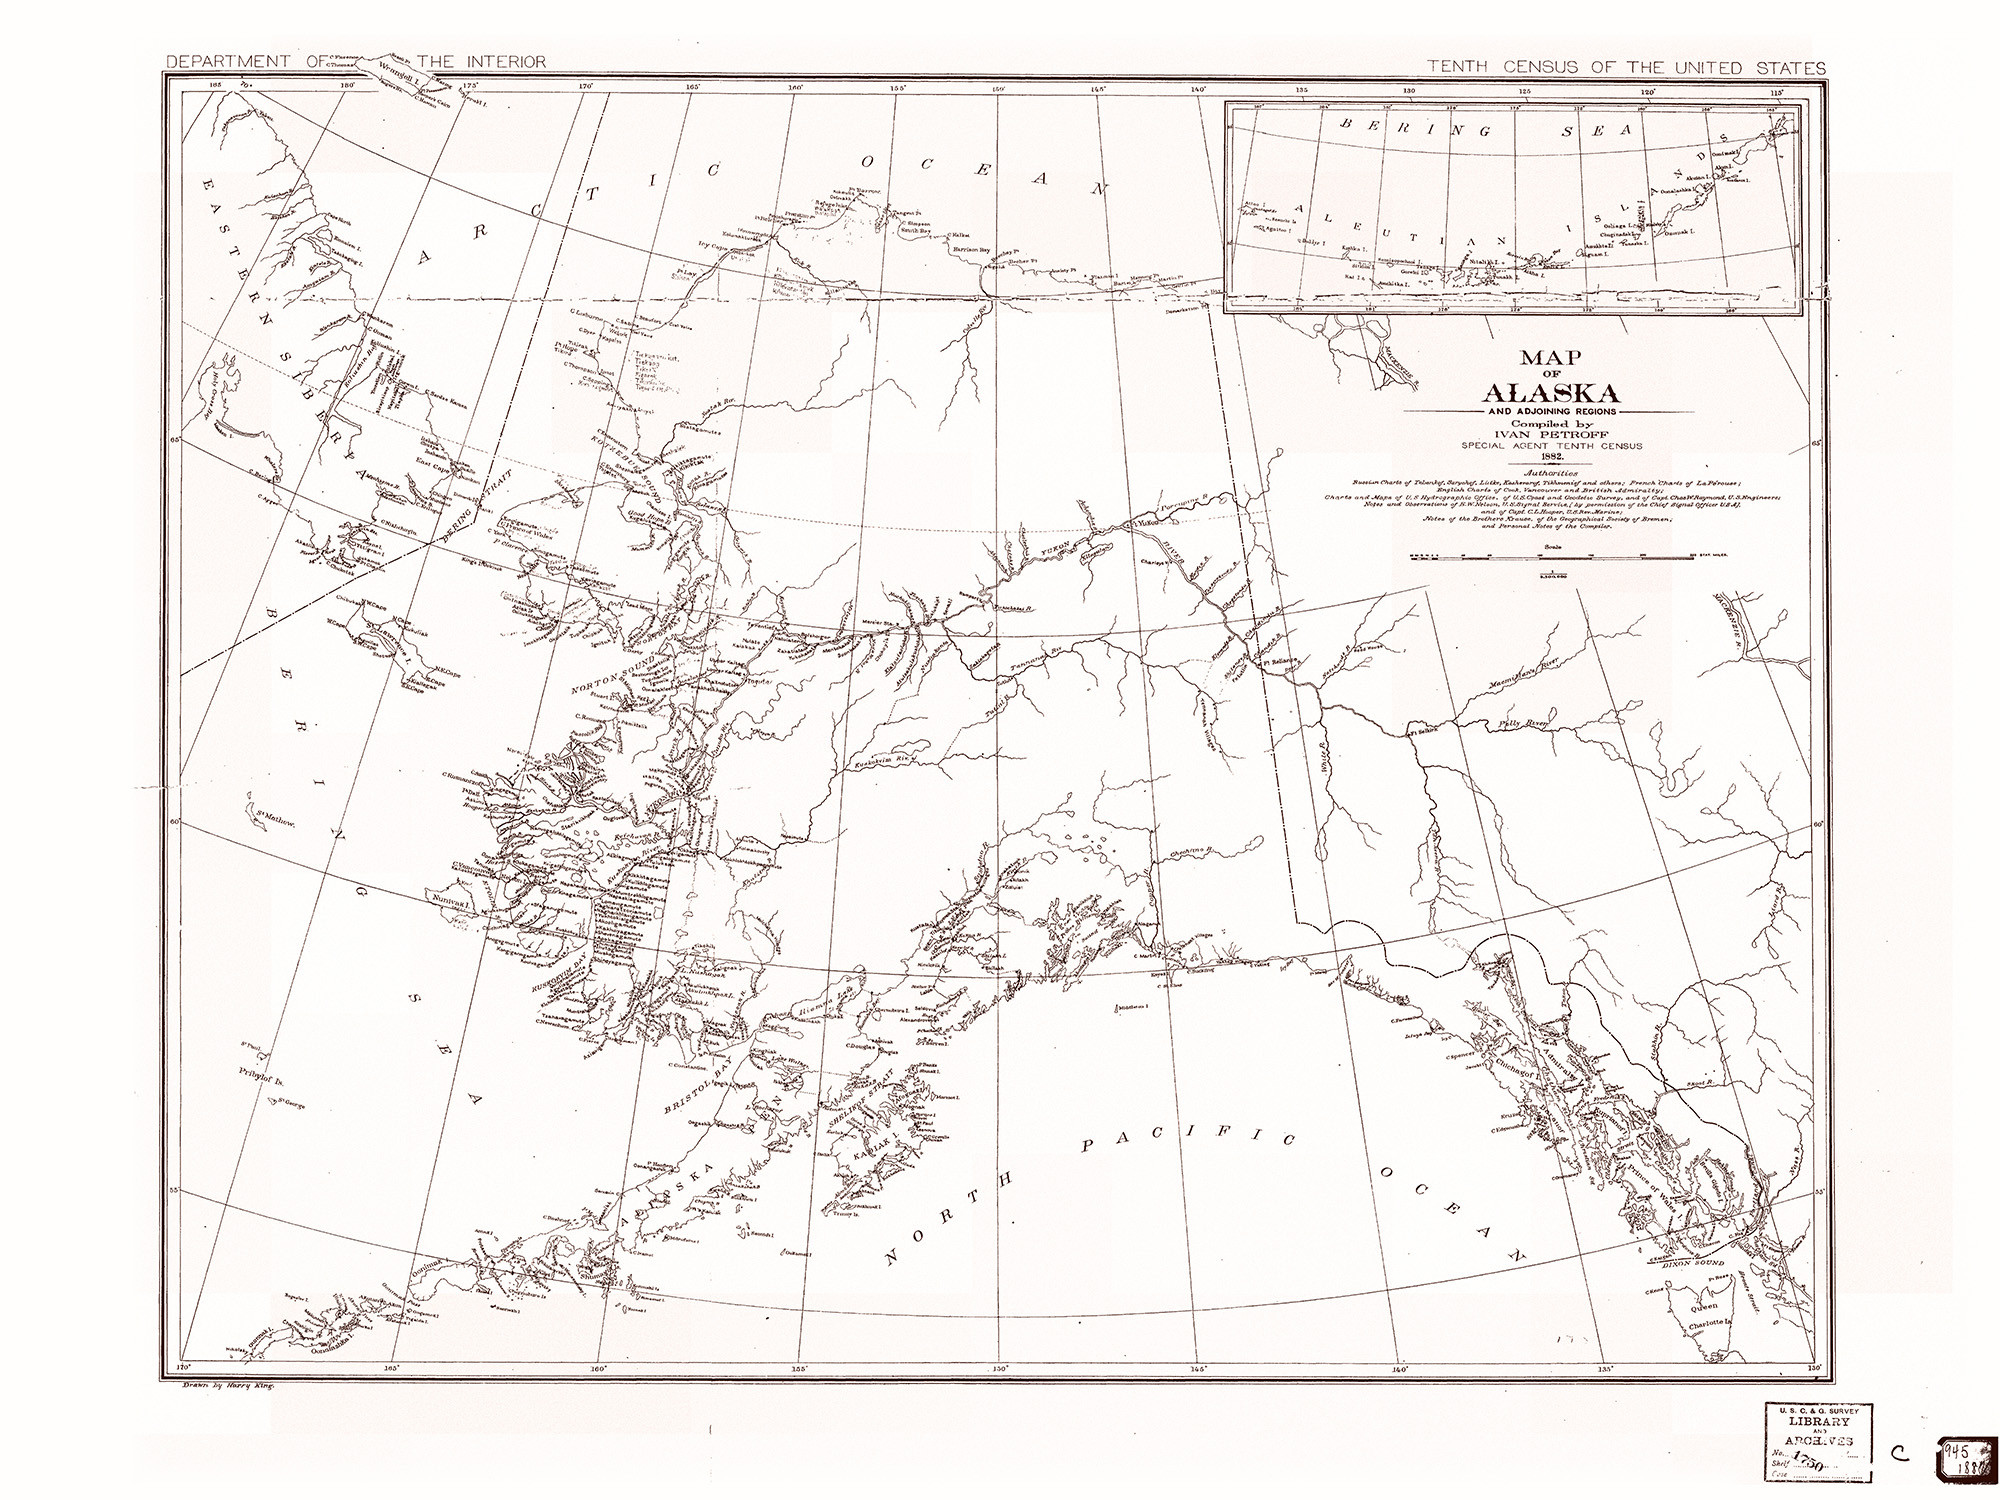 Historical Nautical Chart - 1750-00-1882 Map Of Alaska on united states in 1790, russia map 1750, 13 colonies map 1750, united states before louisiana purchase, italy map 1750, united states in 1890, england map 1750, new york colonial map 1750, united states historical maps, usa map 1750, united states outline, united states interstate system, south america map 1750, south carolina map 1750, land claims in north america map 1750, united states of america colonies, germany map 1750, united states 1870s timeline, virginia map 1750, africa map 1750,